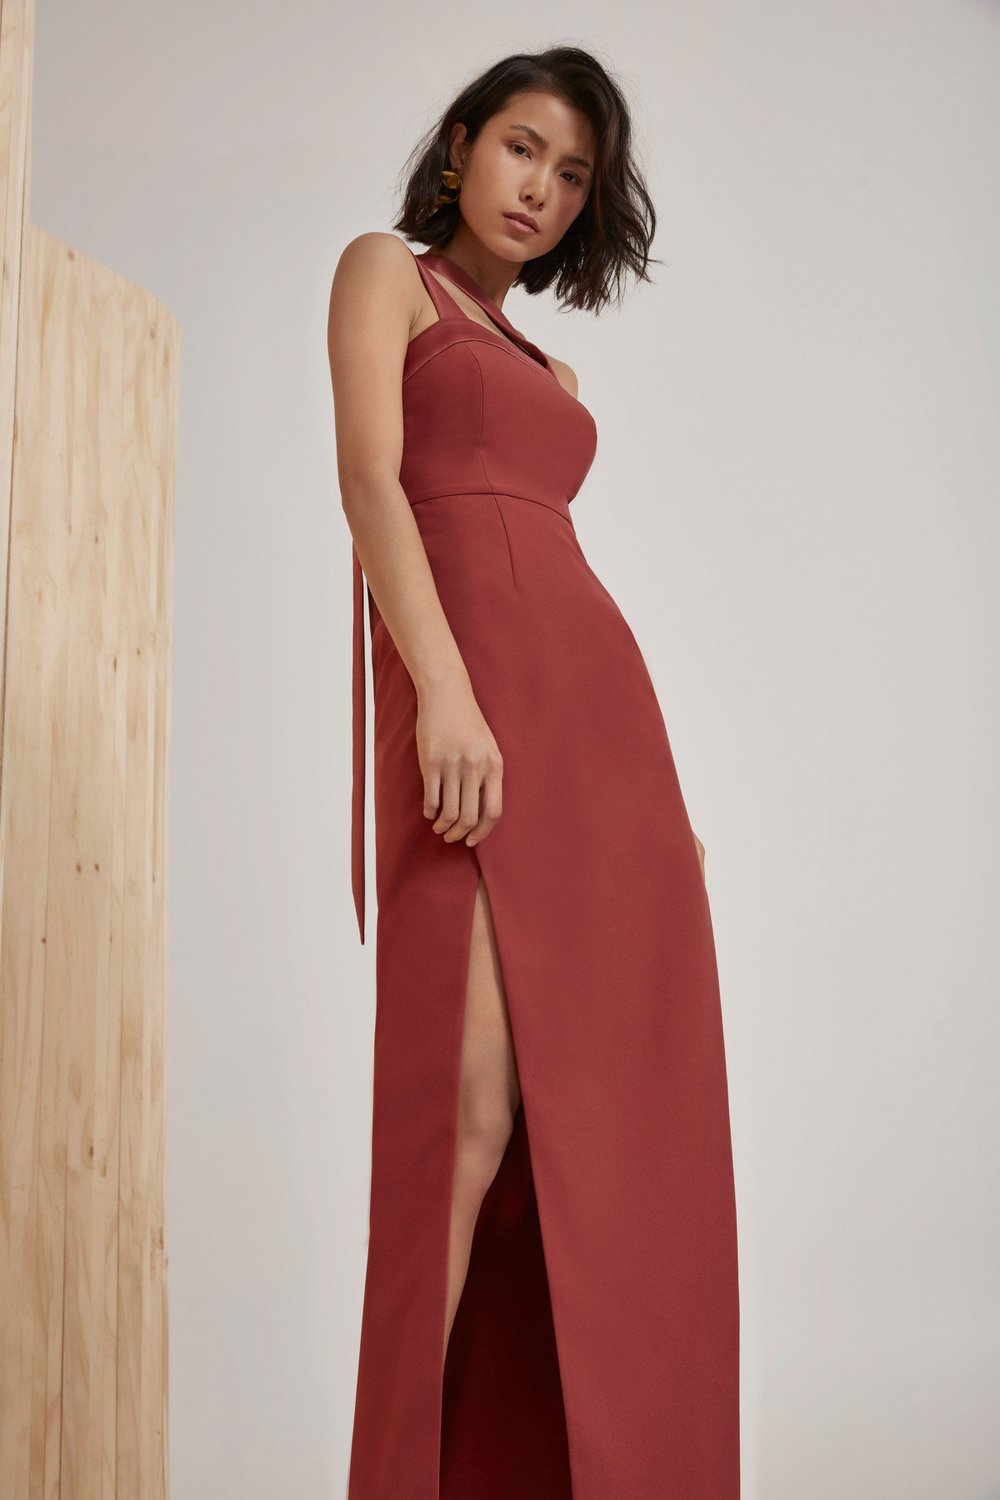 Shop C/MEO Bound Together Full Length Dress.